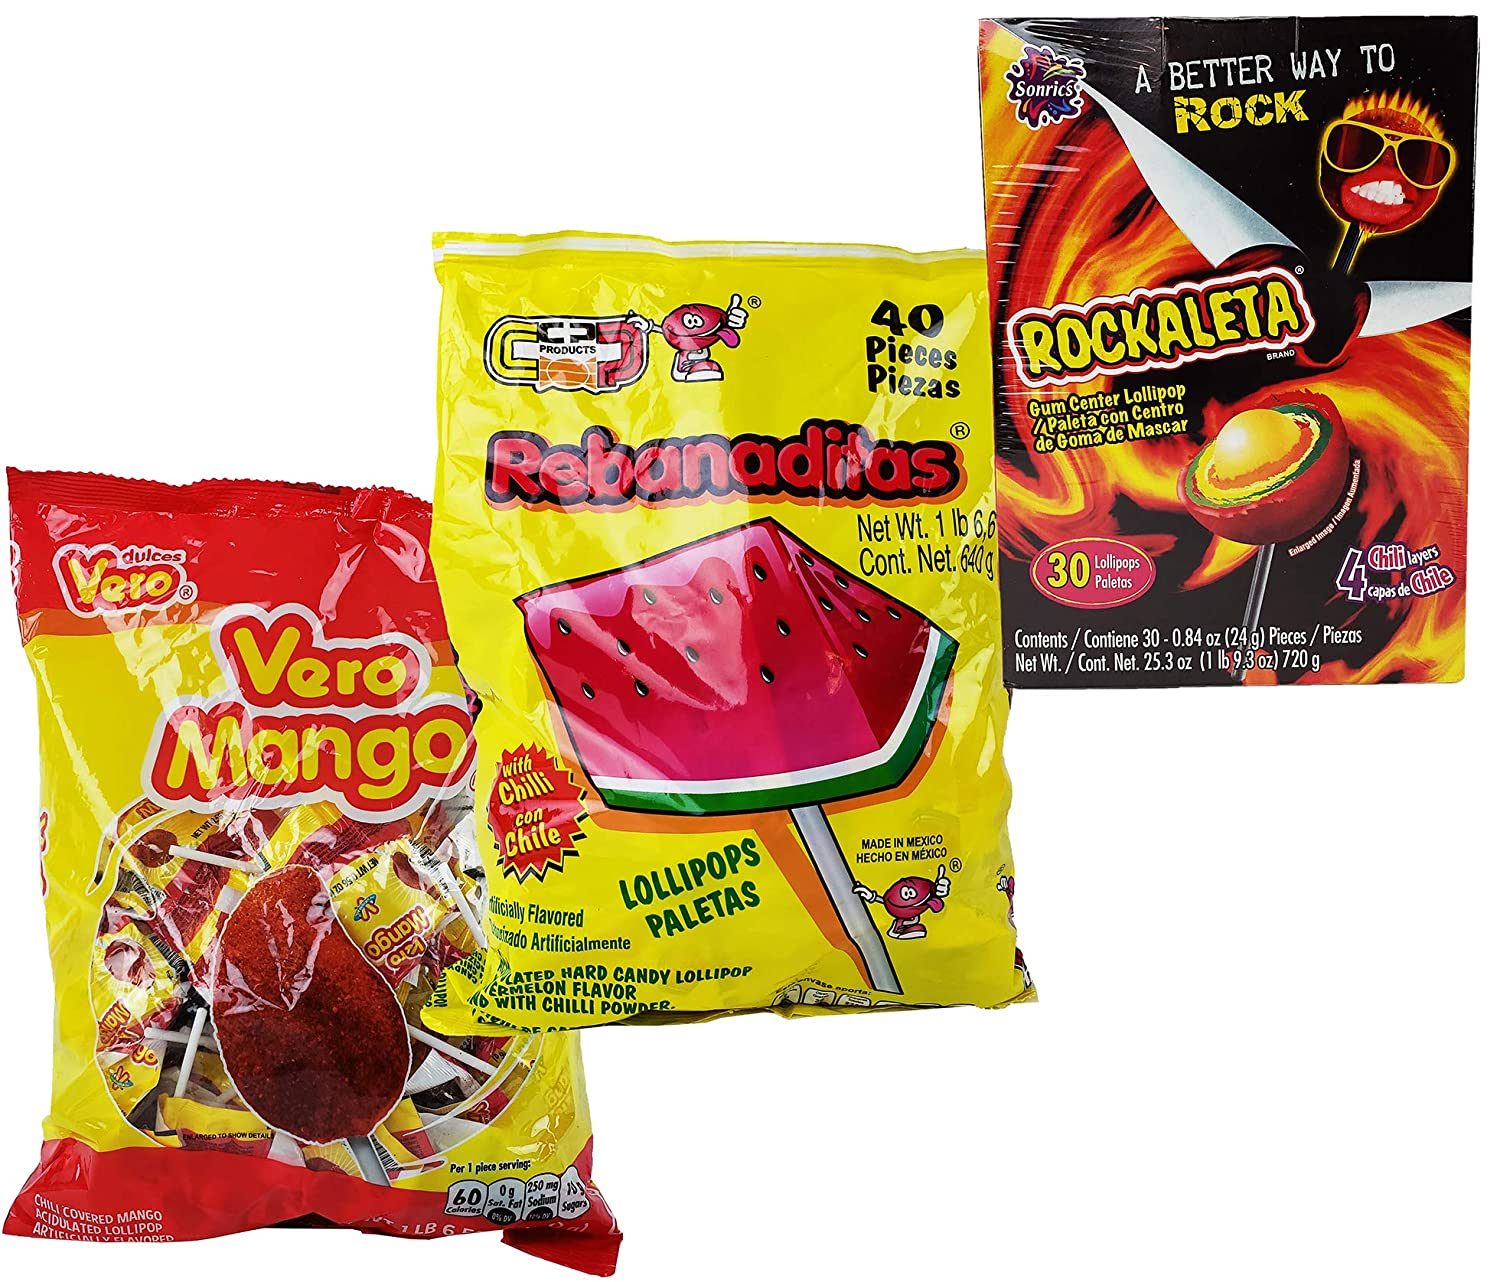 Amazon.com : Mexican Candy Rebanaditas Risandias Watermelon + Rockaleta Paleta + Vero Mango Spicy Sour Lolipop - 3 Pack, 110 pieces total : Grocery ...